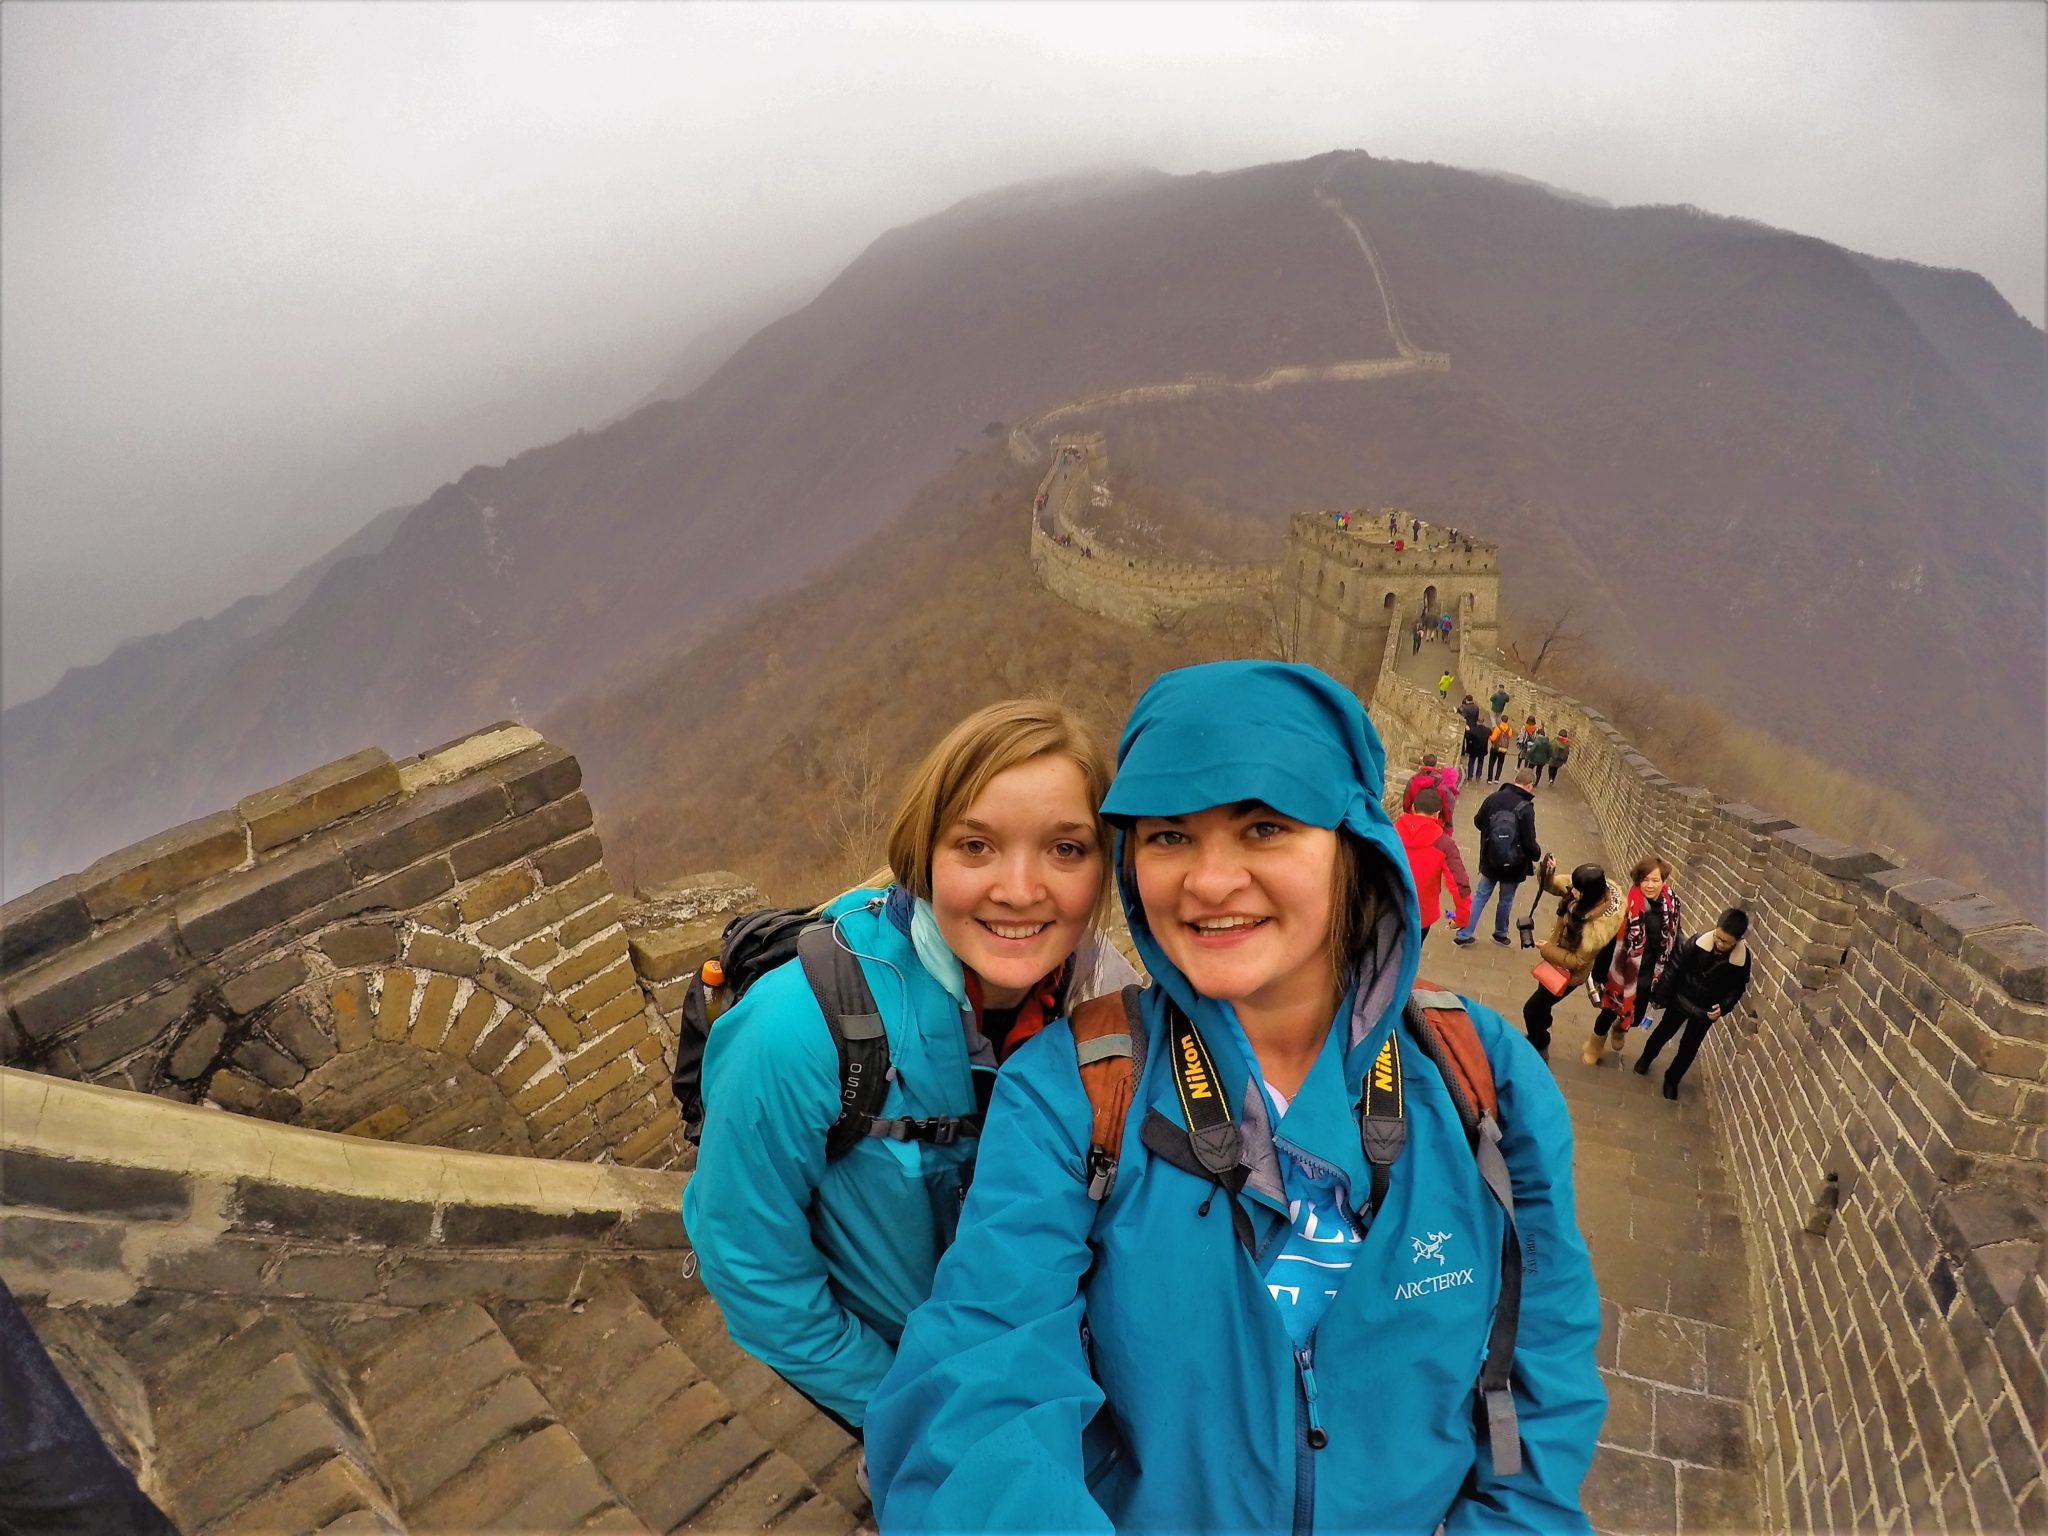 Arcteryx-jacket-great-wall-of-china